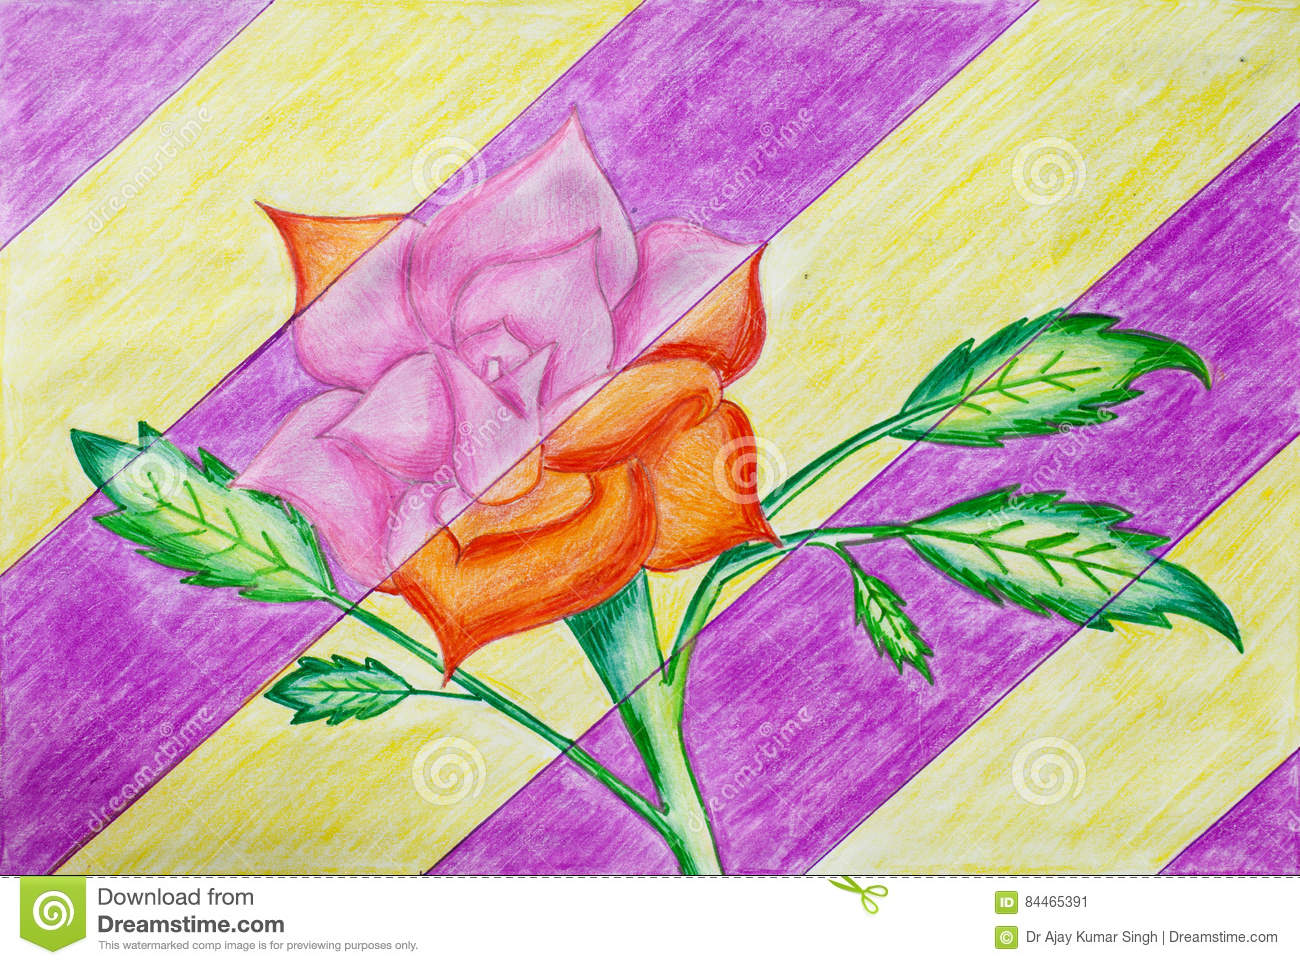 Beautiful rose drawing made by sketch pen and color pencil a child